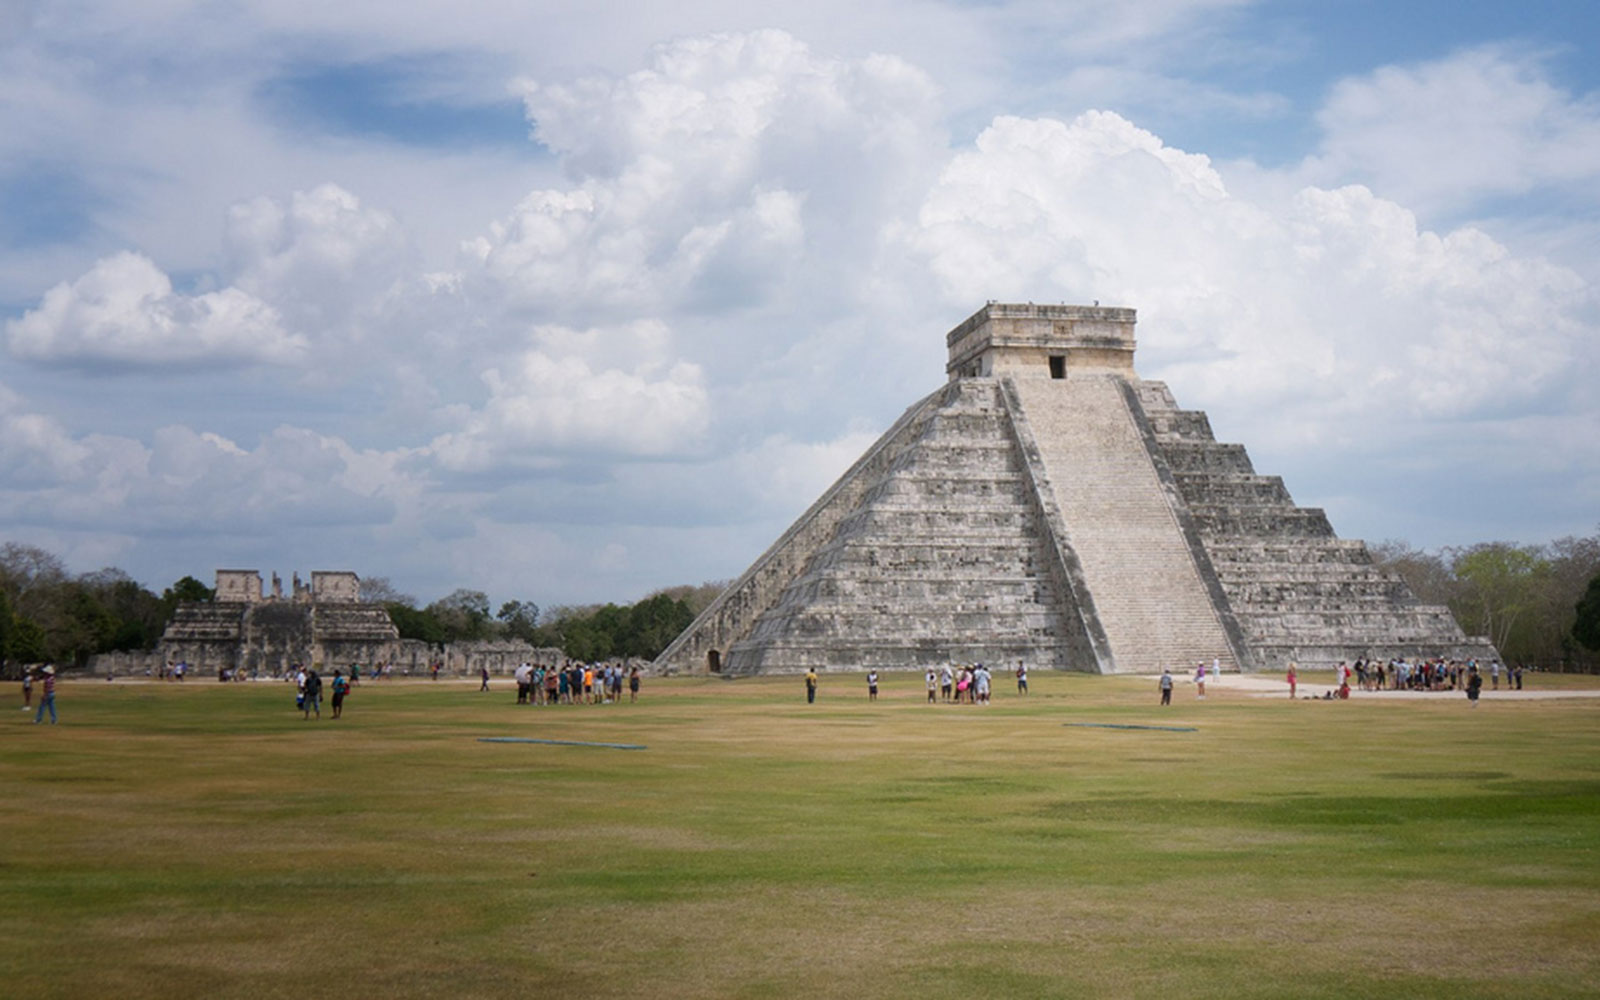 Mexico's Greenest Hotels Offer Guests a Certain 'Om'-biance: The Lodge at Chichen Itza